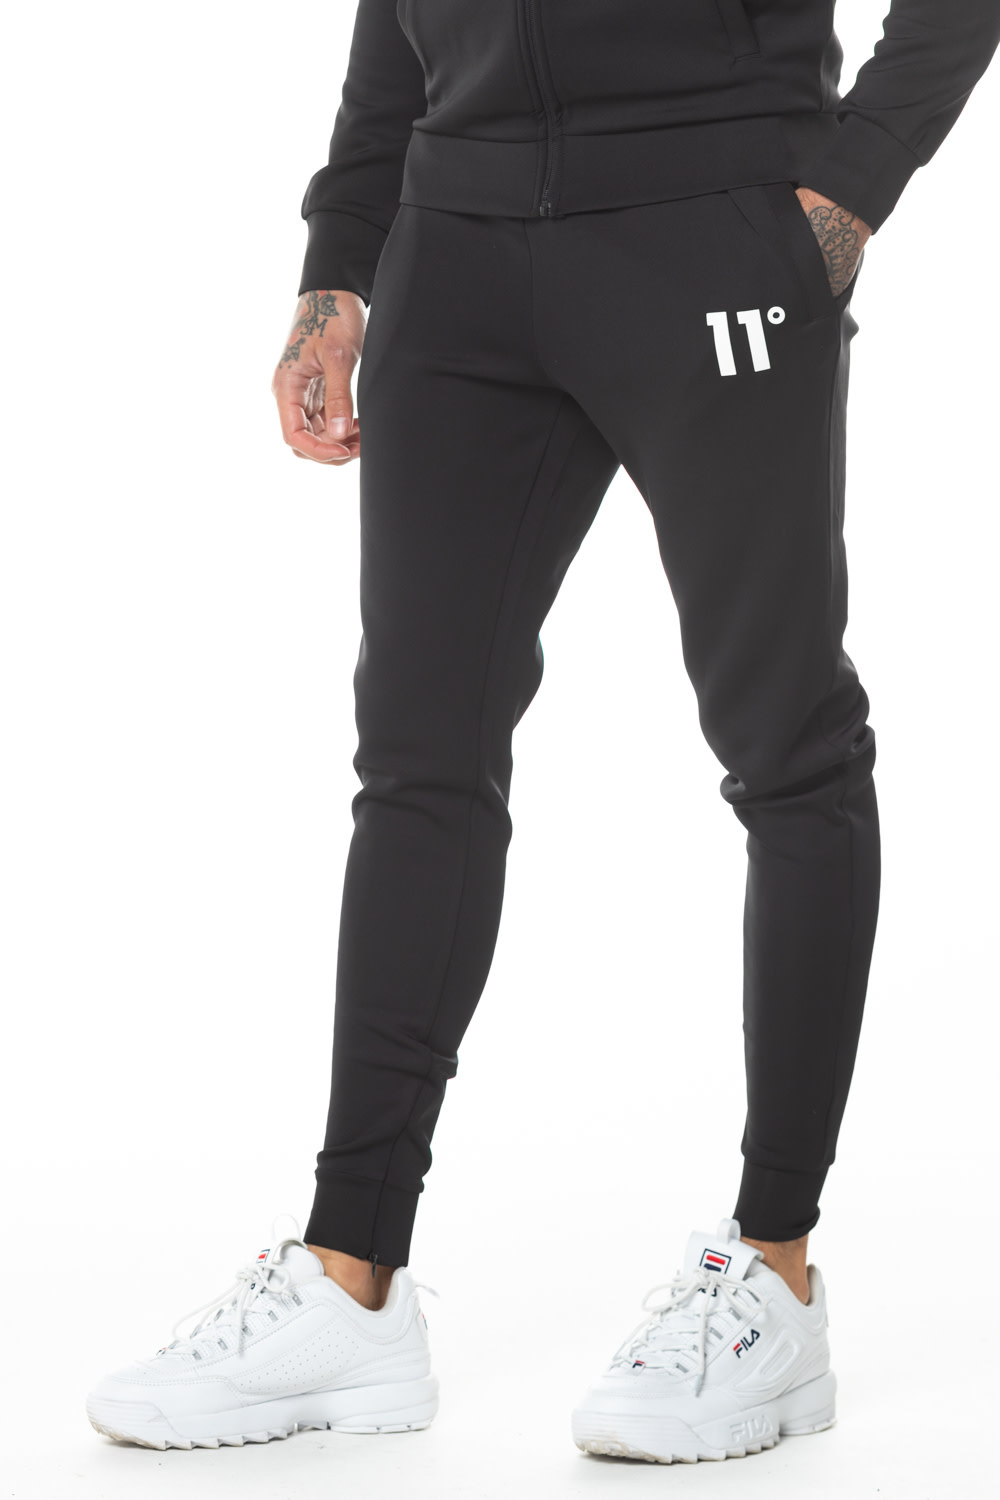 11 Degrees 11 Degrees Core Jogger Regular Fit Black